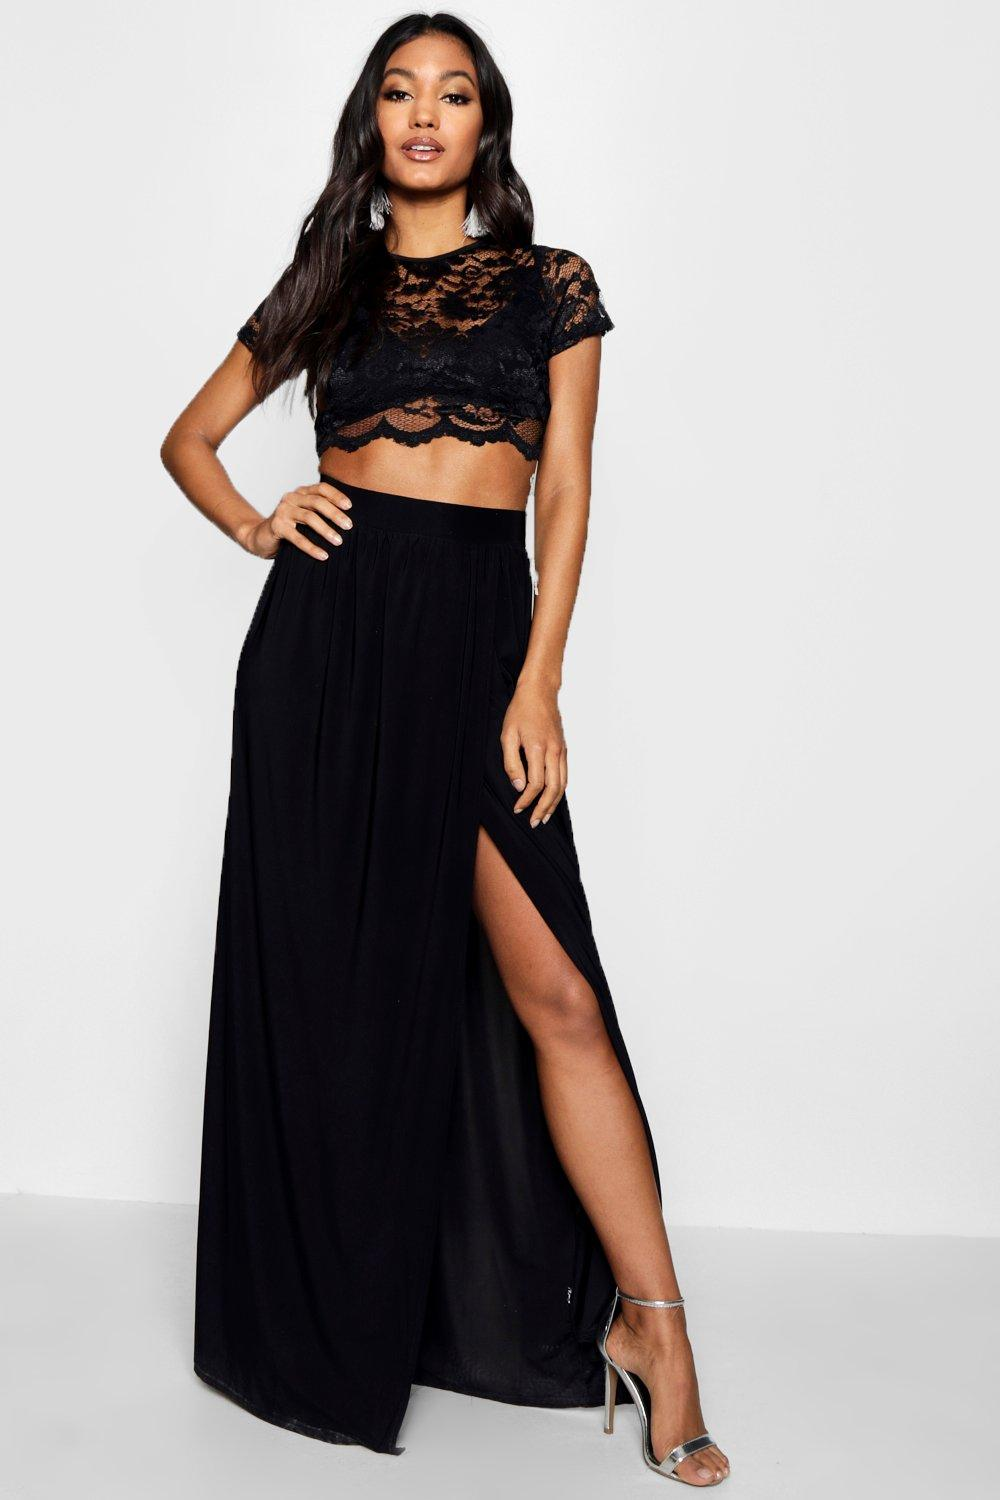 Black leaf lace mesh insert bralet Black leaf lace mesh insert bralet £ Product no: Size guide Only a few left in stock Blue stripe tie front crop long sleeve shirt. Quick view. Add to wishlist. £ White ribbed halterneck crop top +5; Quick view. Add to .